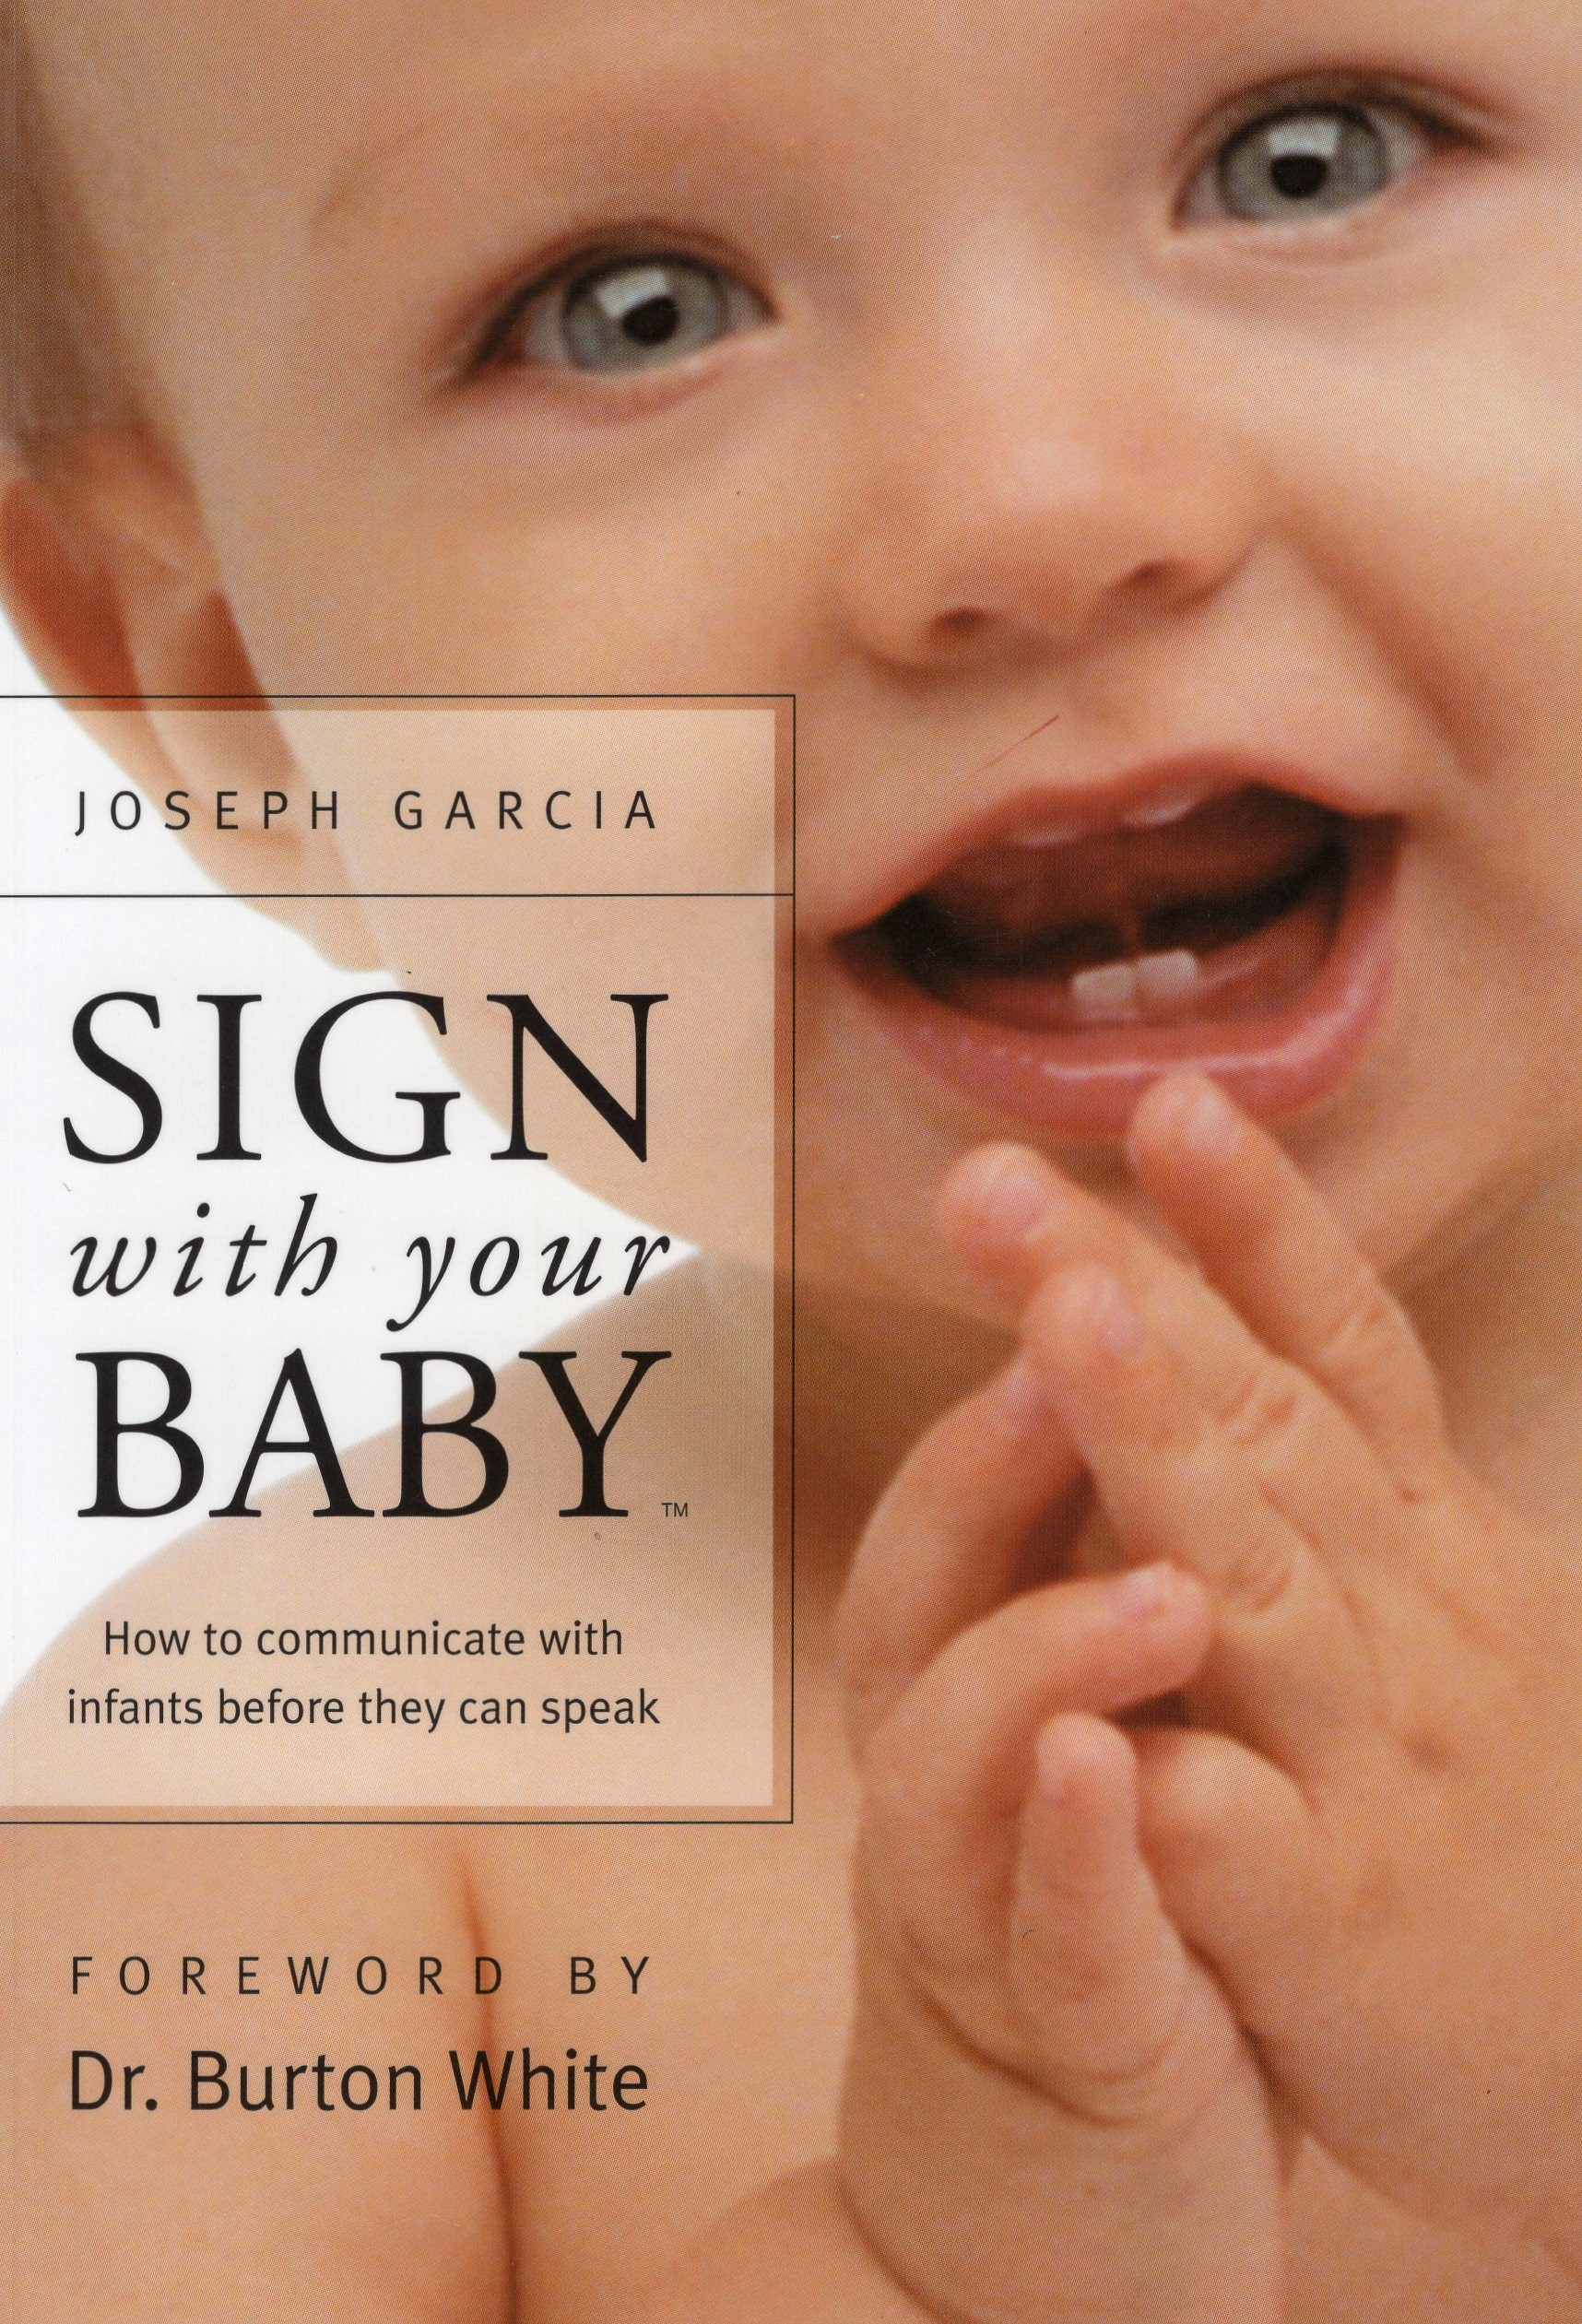 Sign with your Baby - Joseph Garcia